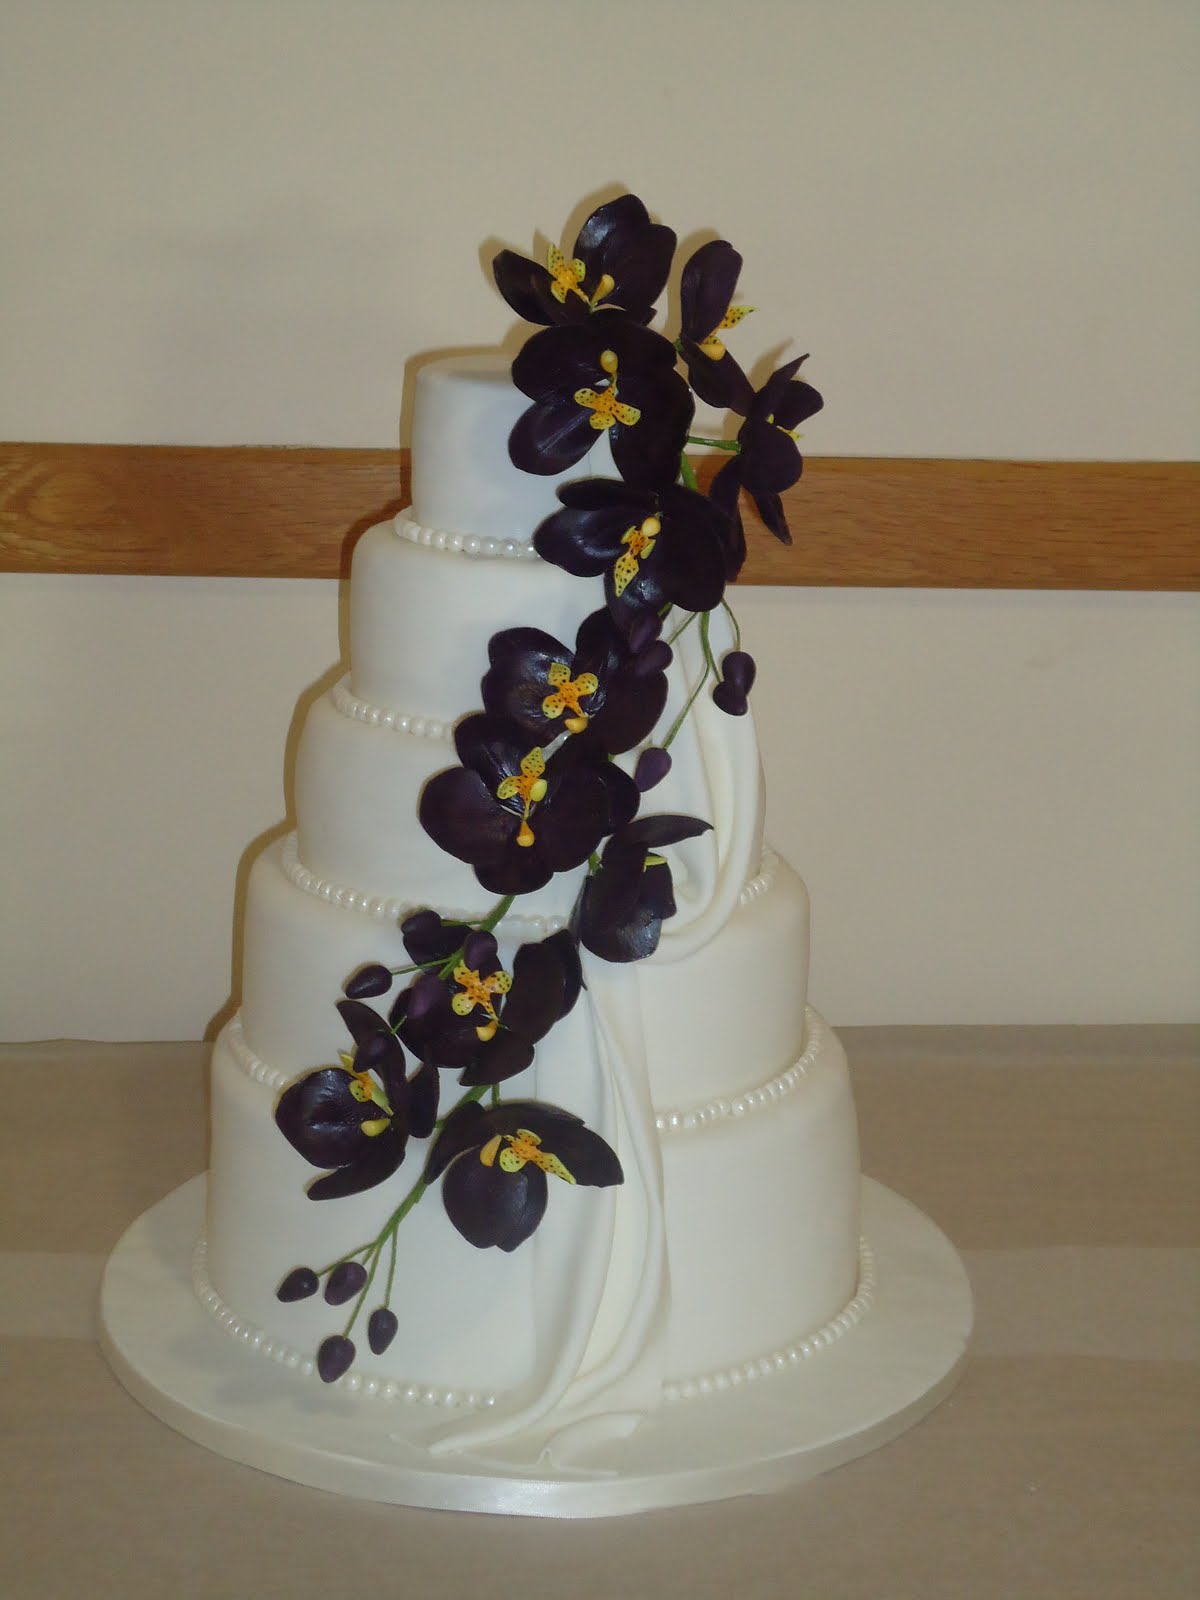 The Lavender Cakes Orchid wedding cake